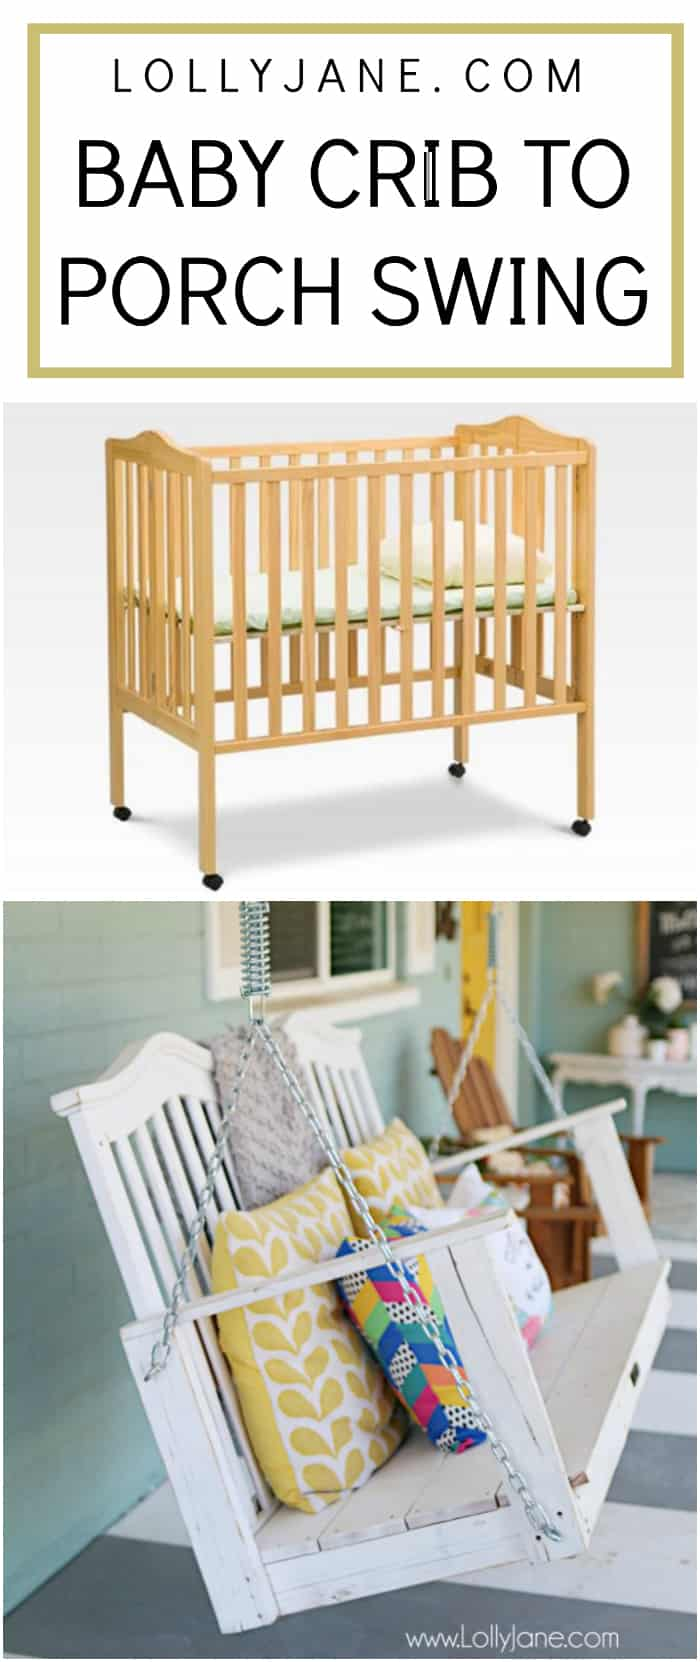 Check out this baby crib turned porch swing using scrap wood and white paint! Don't let your memories of your baby fade, turn their first bed into a lifelong swing to keep making memories! #babycribporchswing #diycribswing #porchswing #diyporchswing #cribporchswing